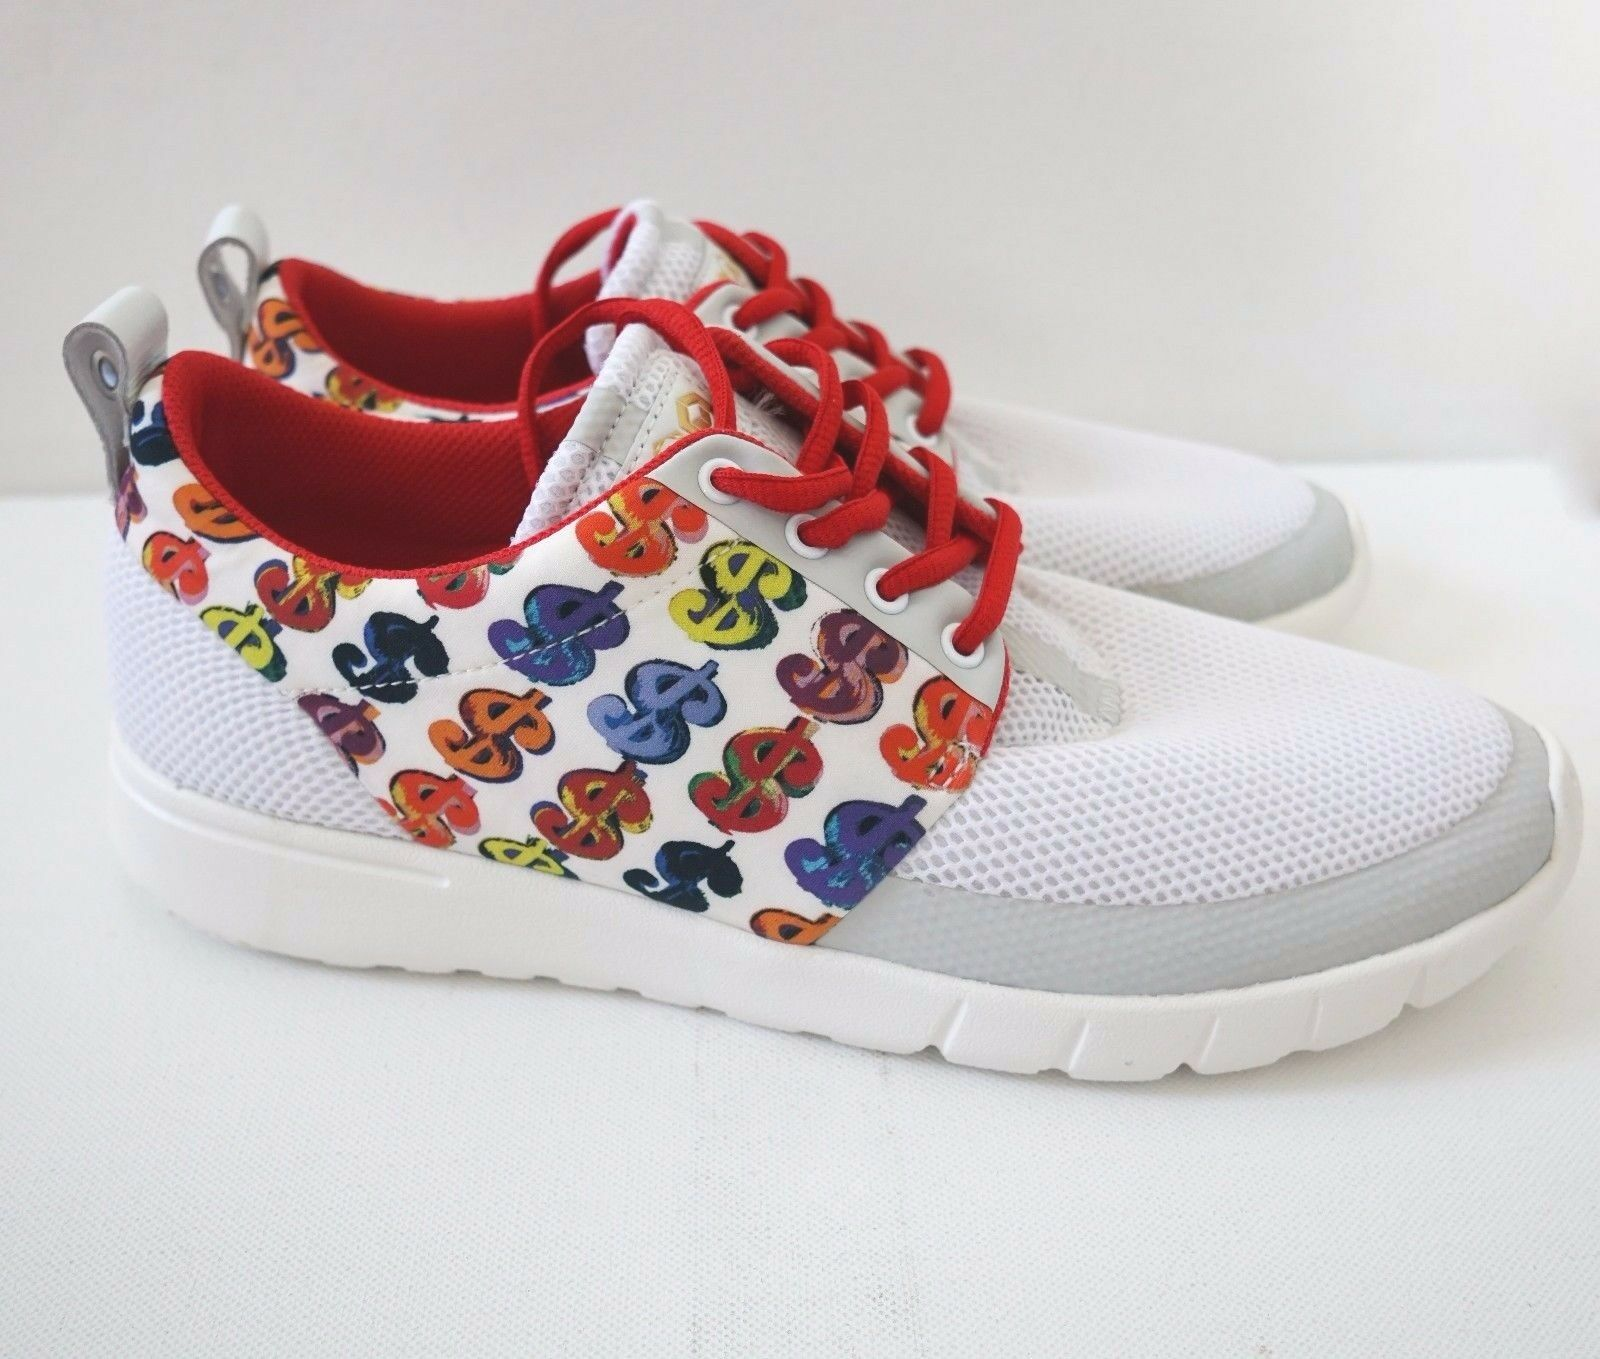 MOA MASTER OF ARTS Multi-colord Fashion Sneakers EUR-41 US-8 EUR-43 US-9.5